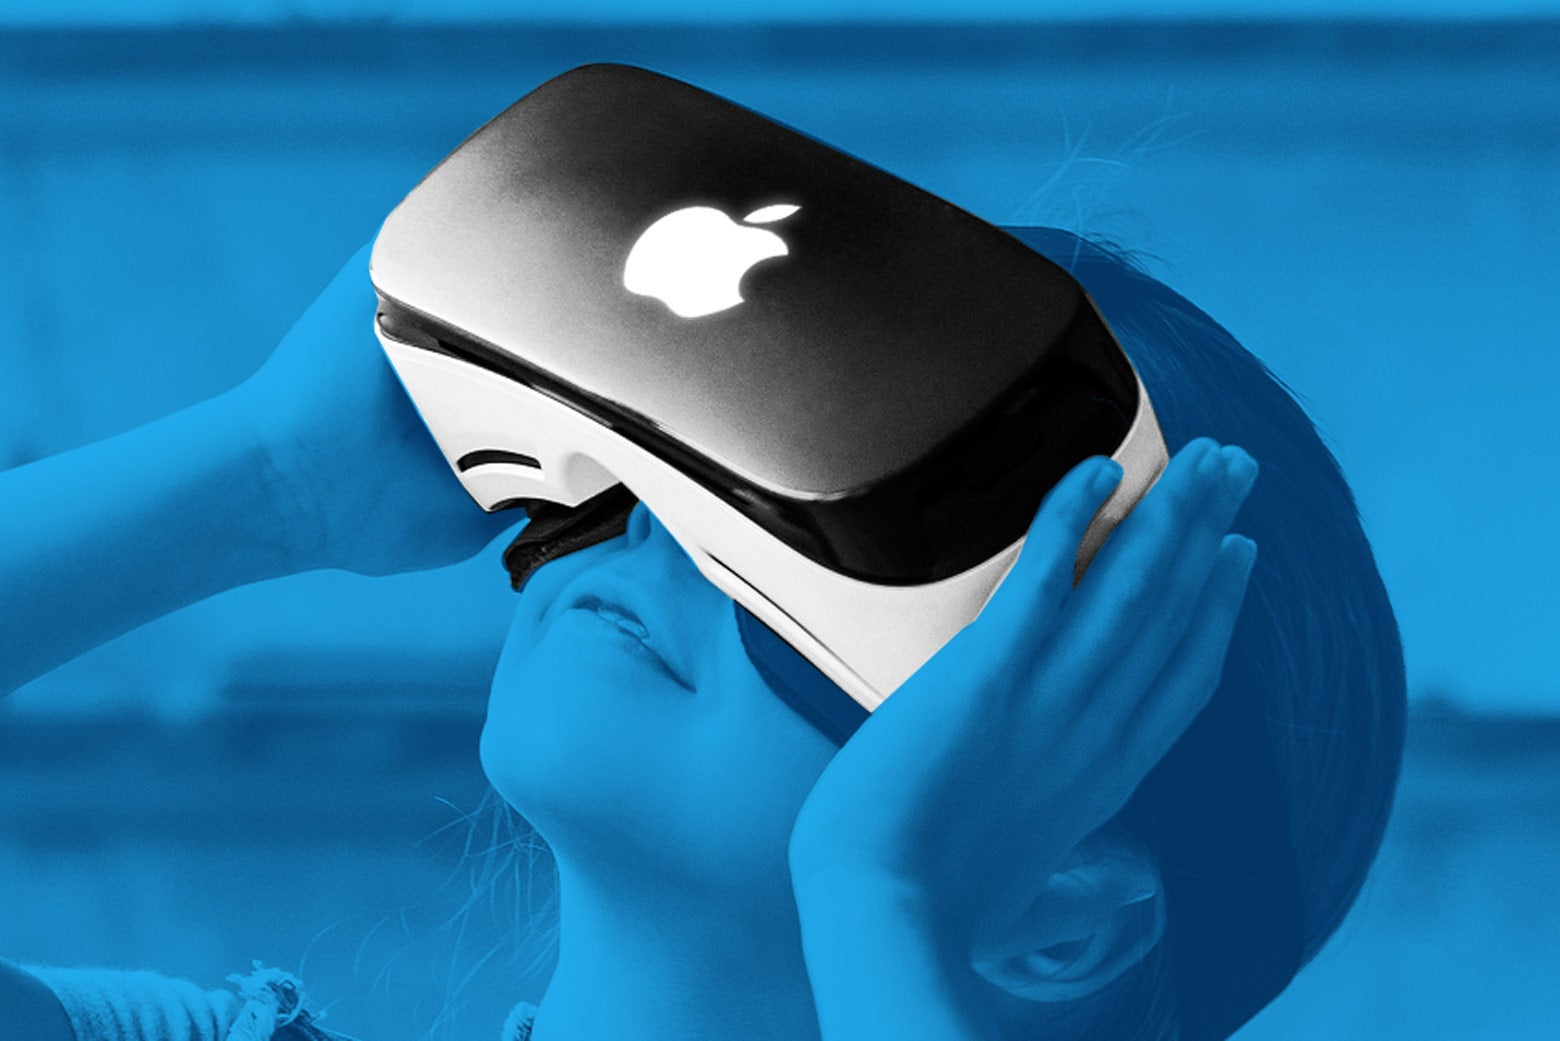 A VR headset with an Apple logo.